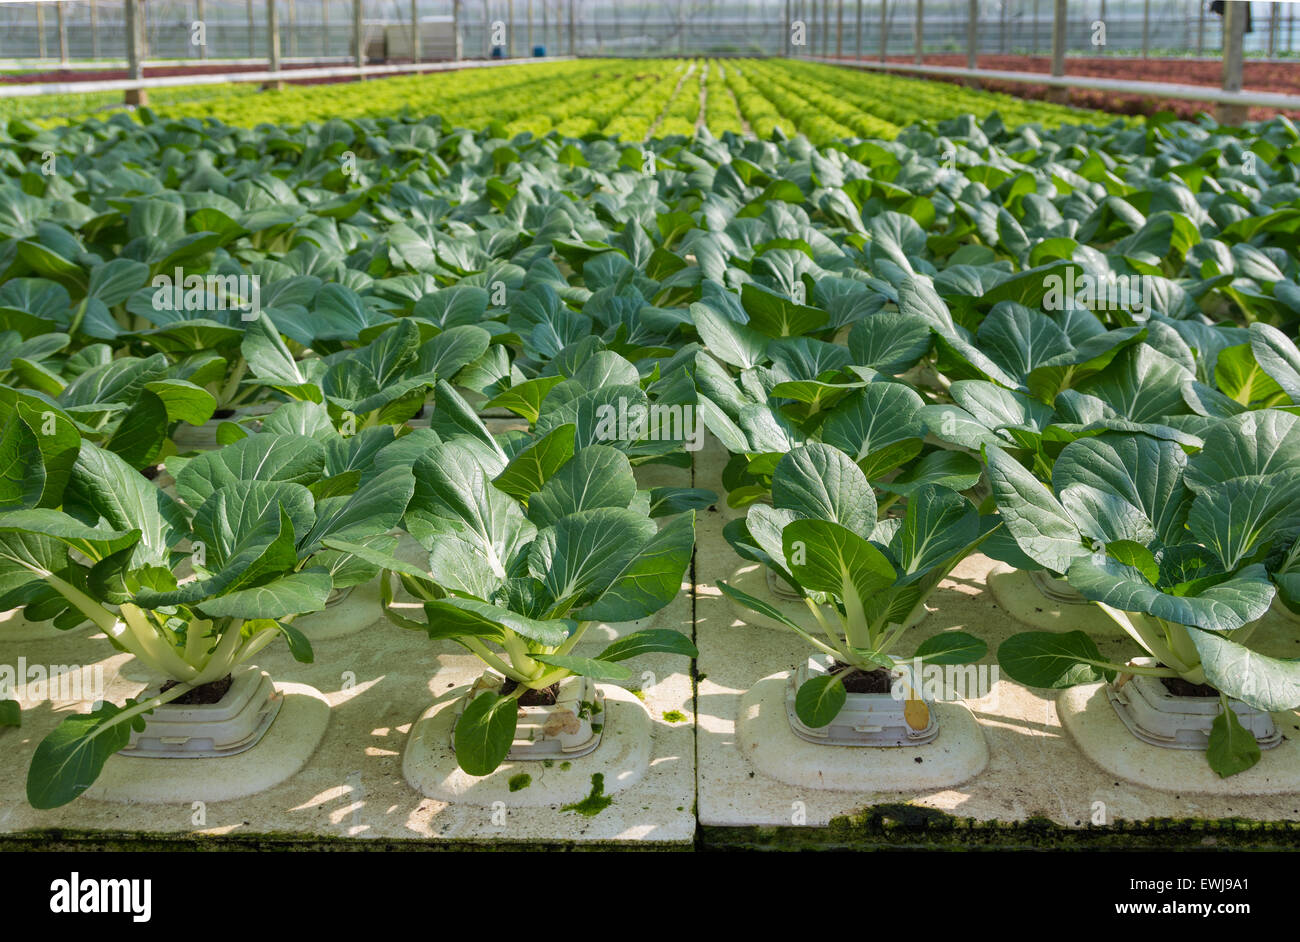 Stock Photo   Cultivation Of Vegetables In A Greenhouse In The Netherlands